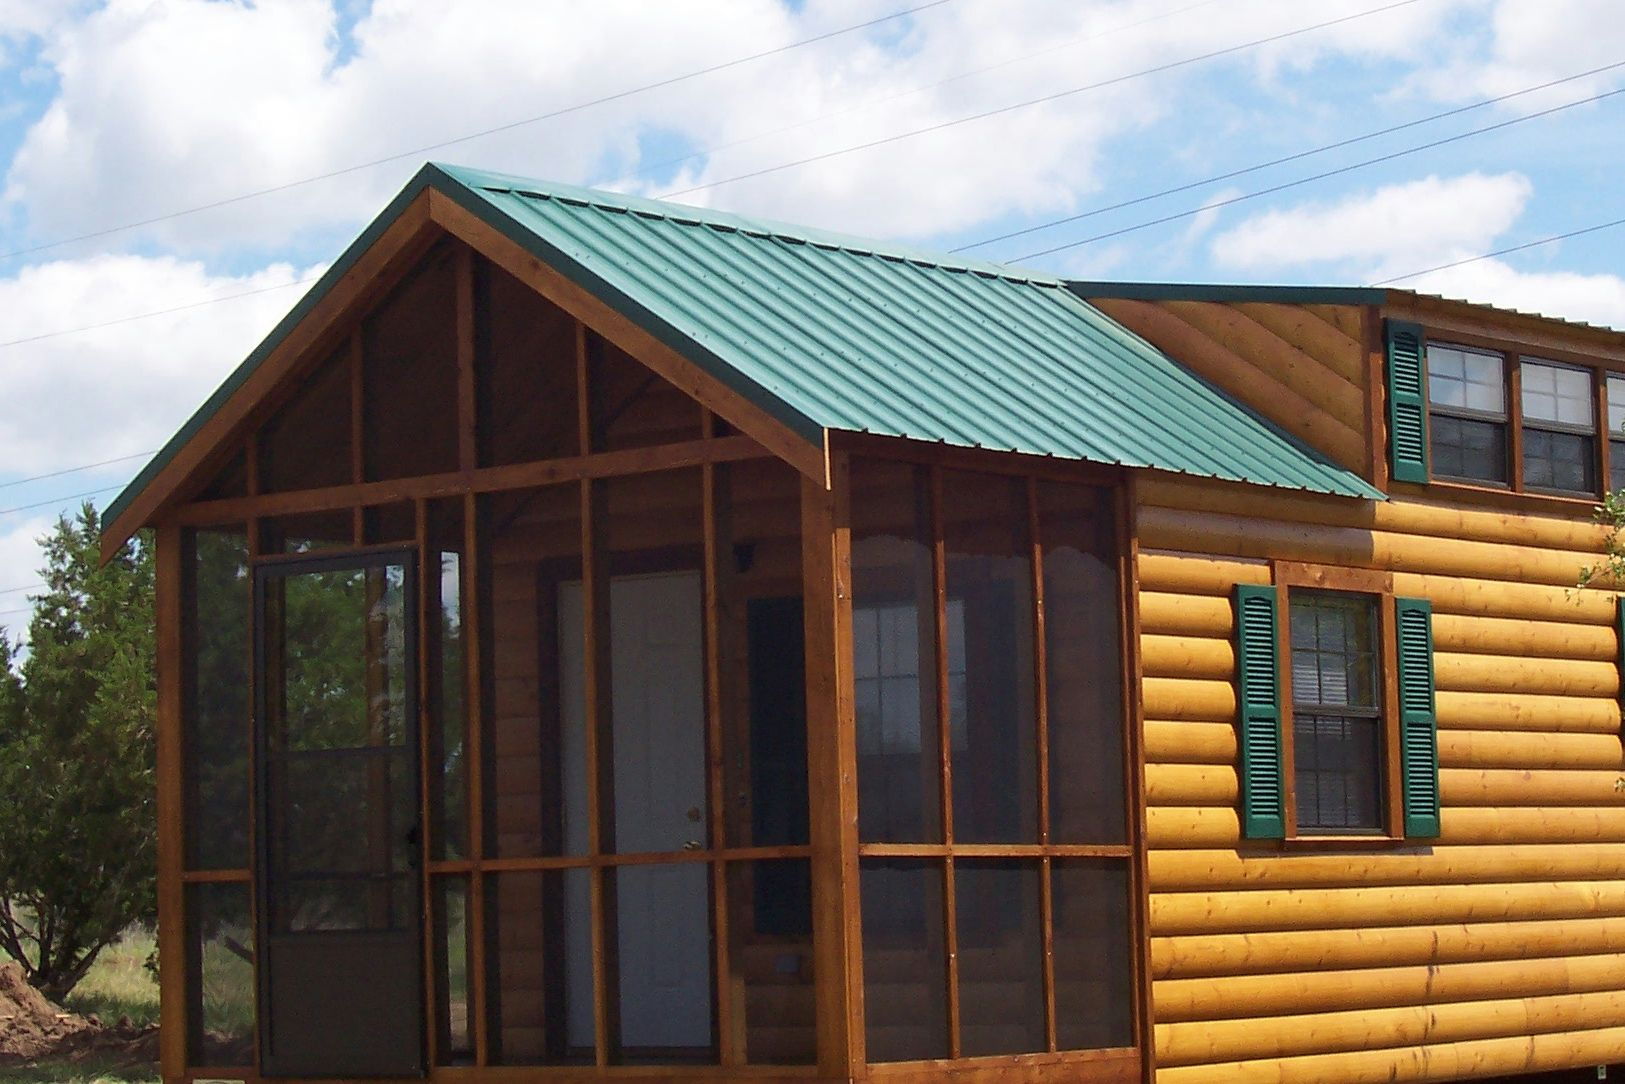 Tiny Cabins And Cute Trailers Welcome To Rio Bonito Cabin Rental